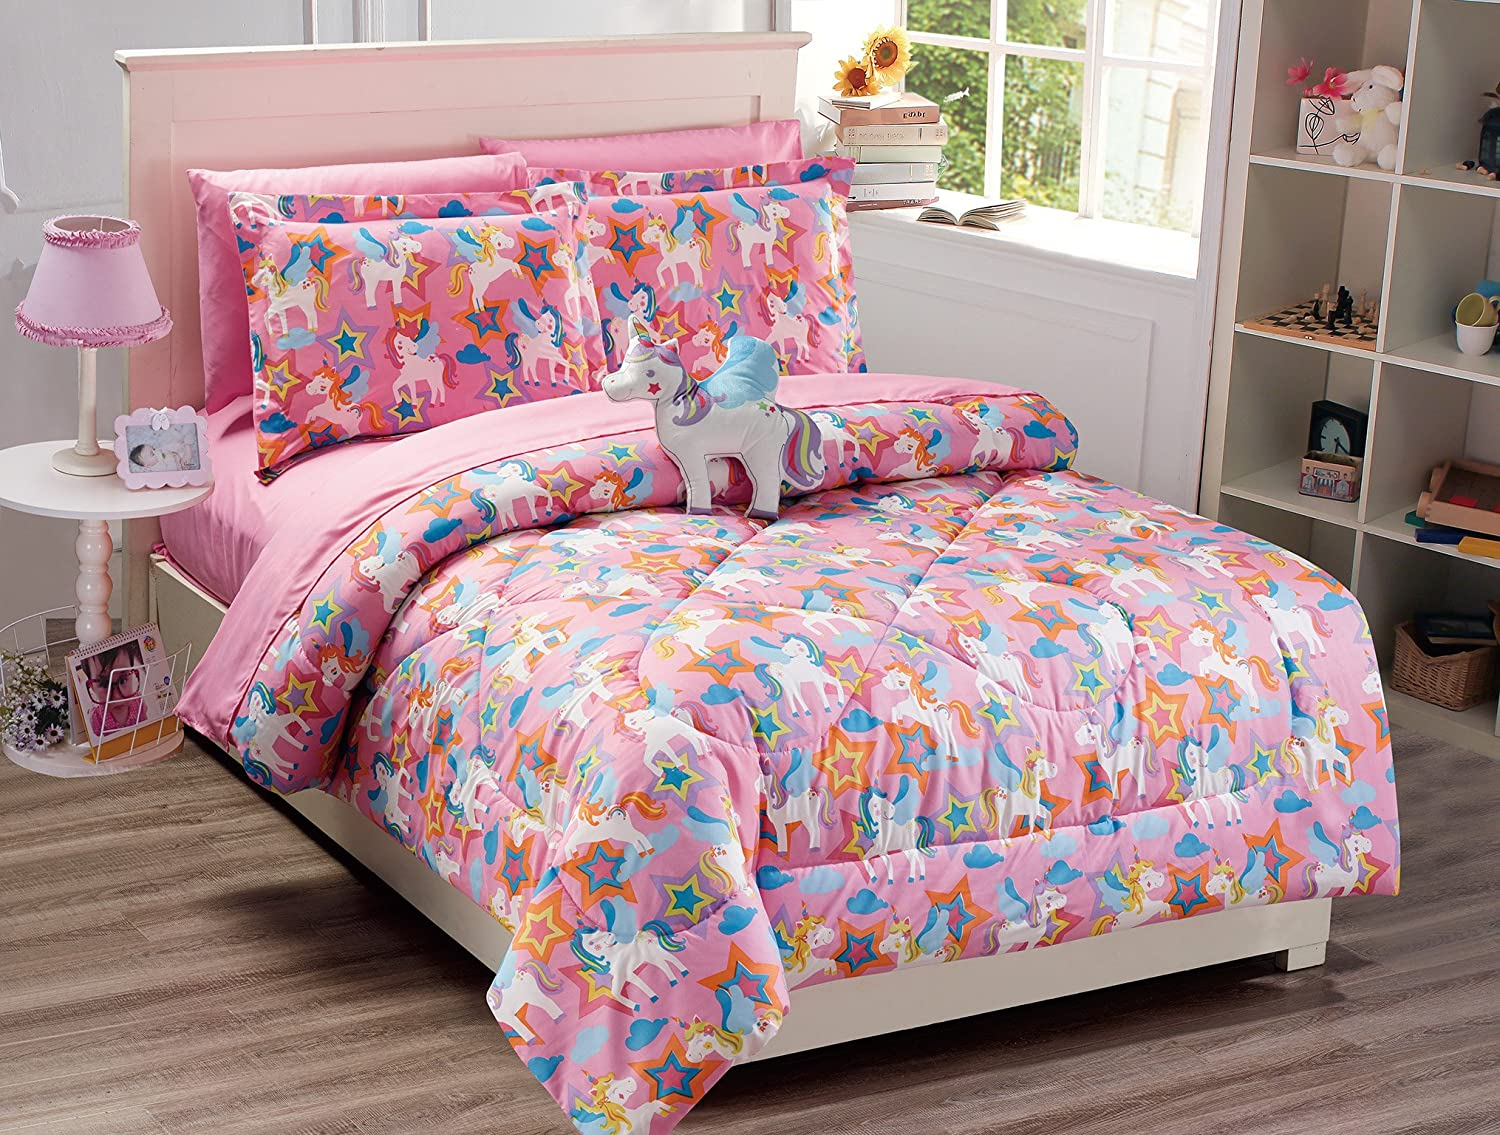 Elegant Home Multicolor Pink Purple White Blue Orange Unicorn Design Fun 8 Piece Comforter Bedding Set